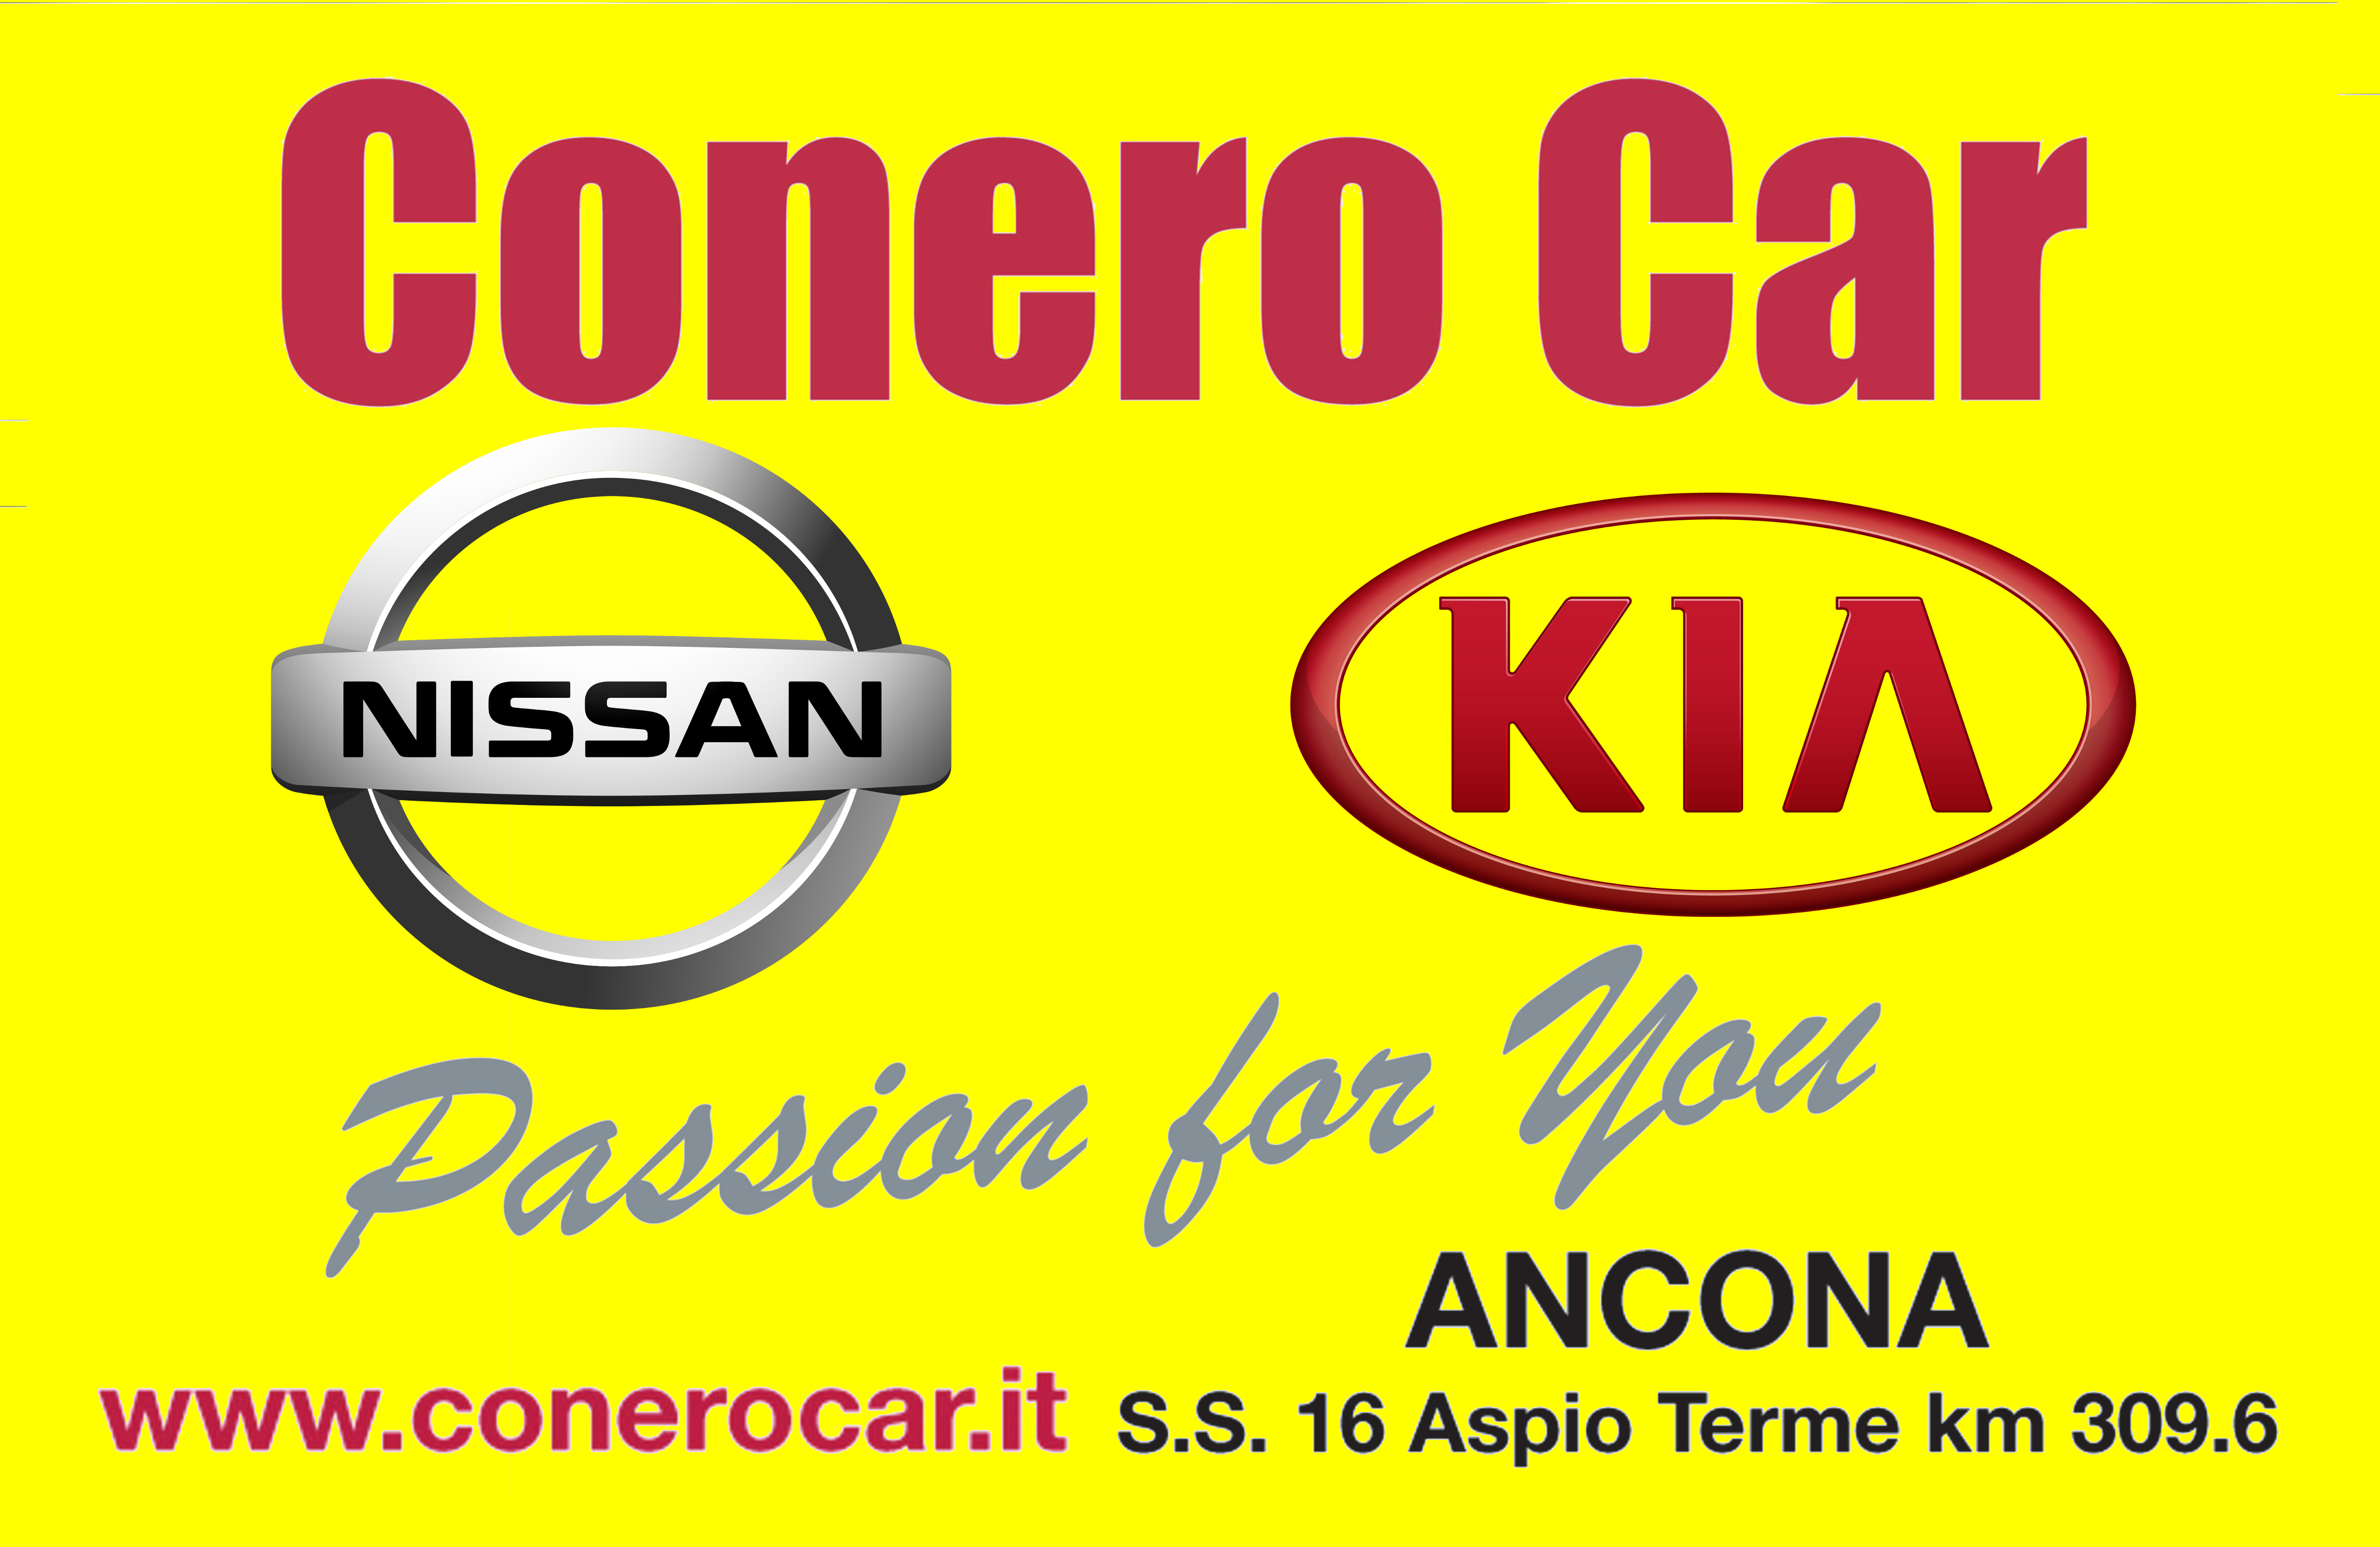 conero car passion for you 5x3